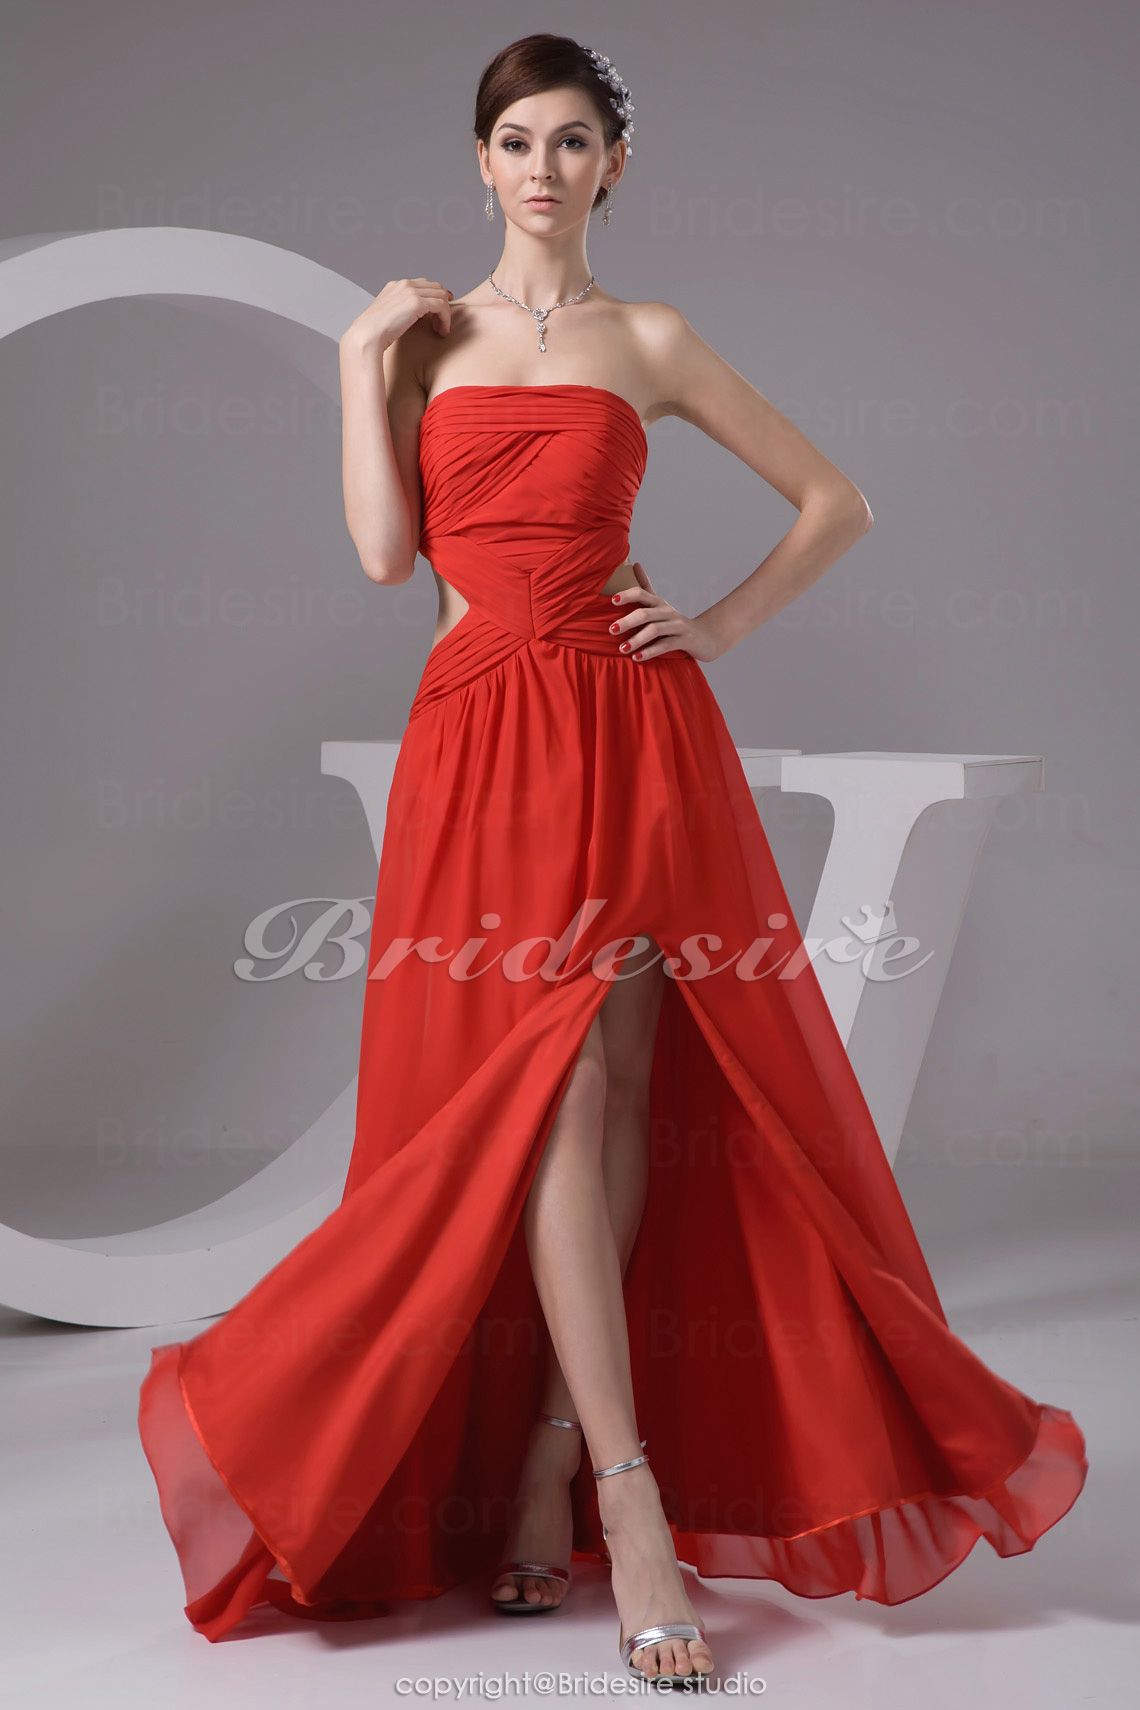 Sheath/Column Strapless Floor-length Sleeveless Chiffon Bridesmaid Dress